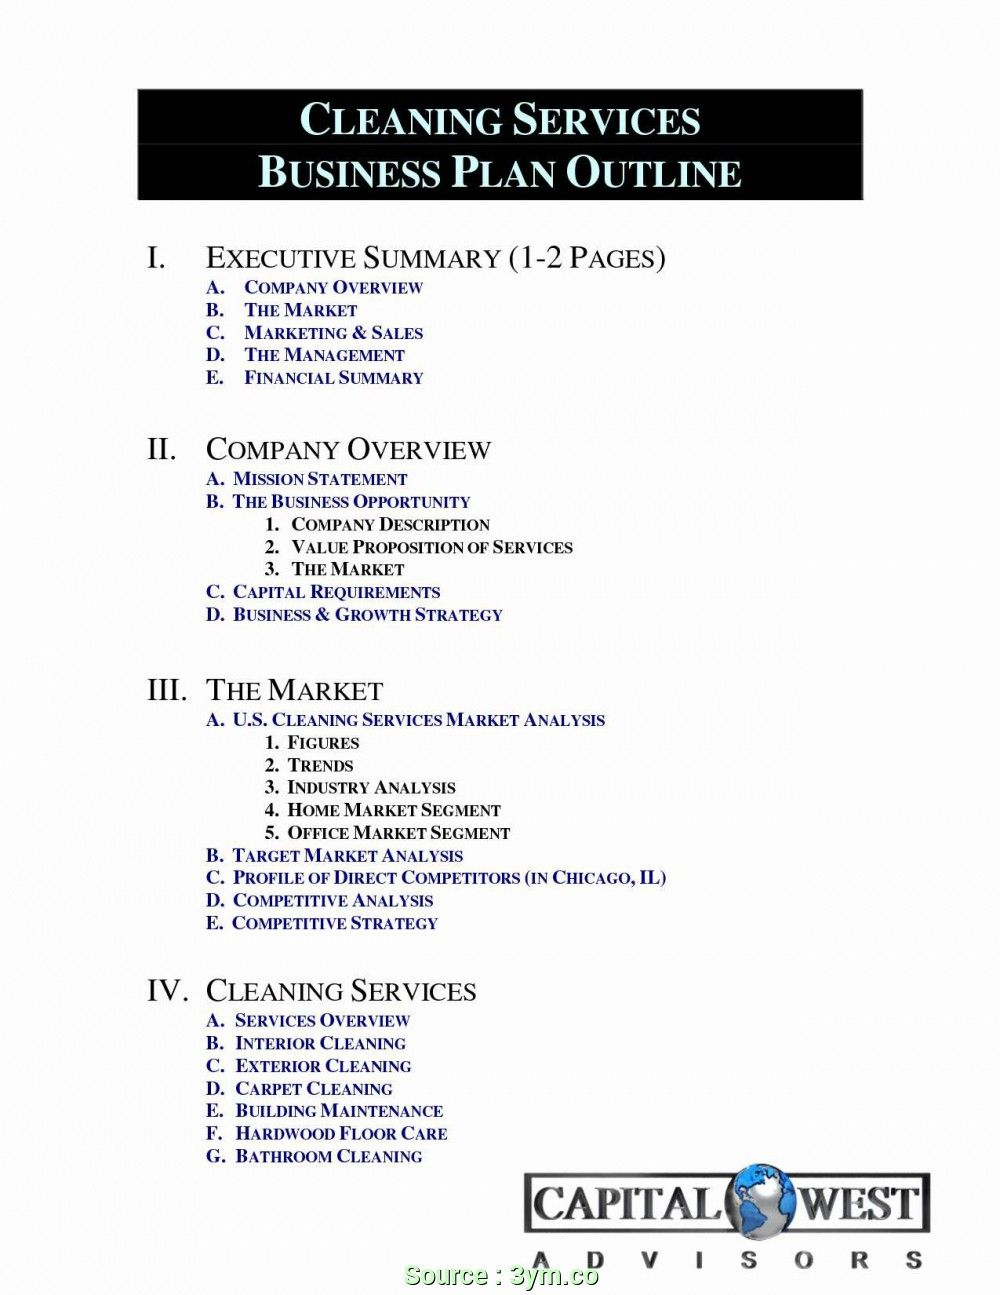 Business Plans Lawn Care Plan Template Free Practical How To Intended For Lawn Ca In 2020 Business Plan Template Free Business Plan Template Executive Summary Template